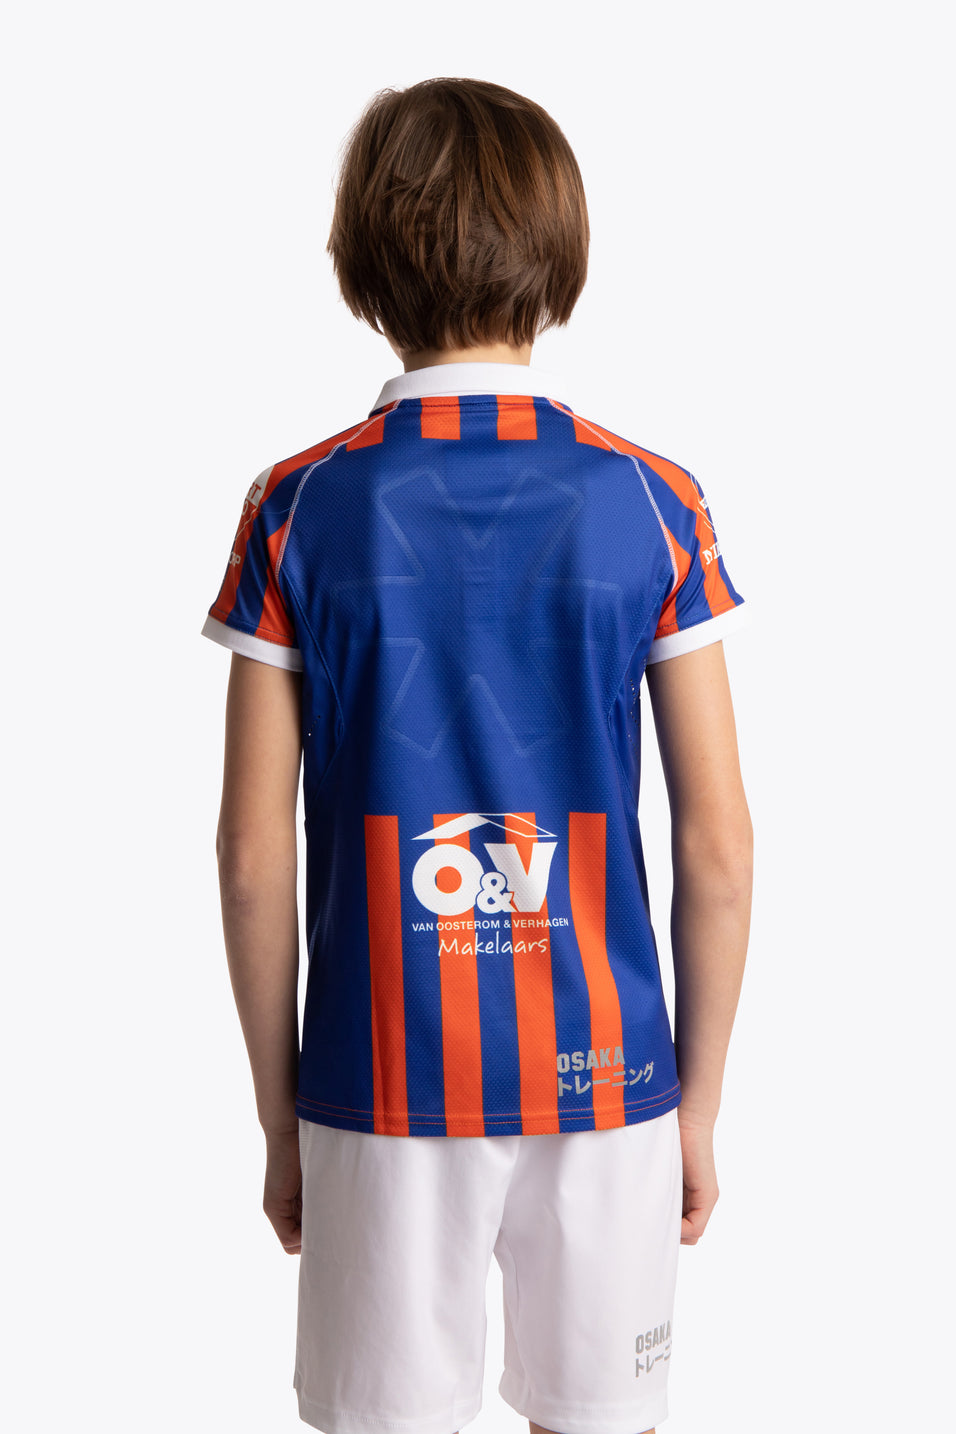 HC Ypenburg Deshi Polo Jersey - Blue / Orange